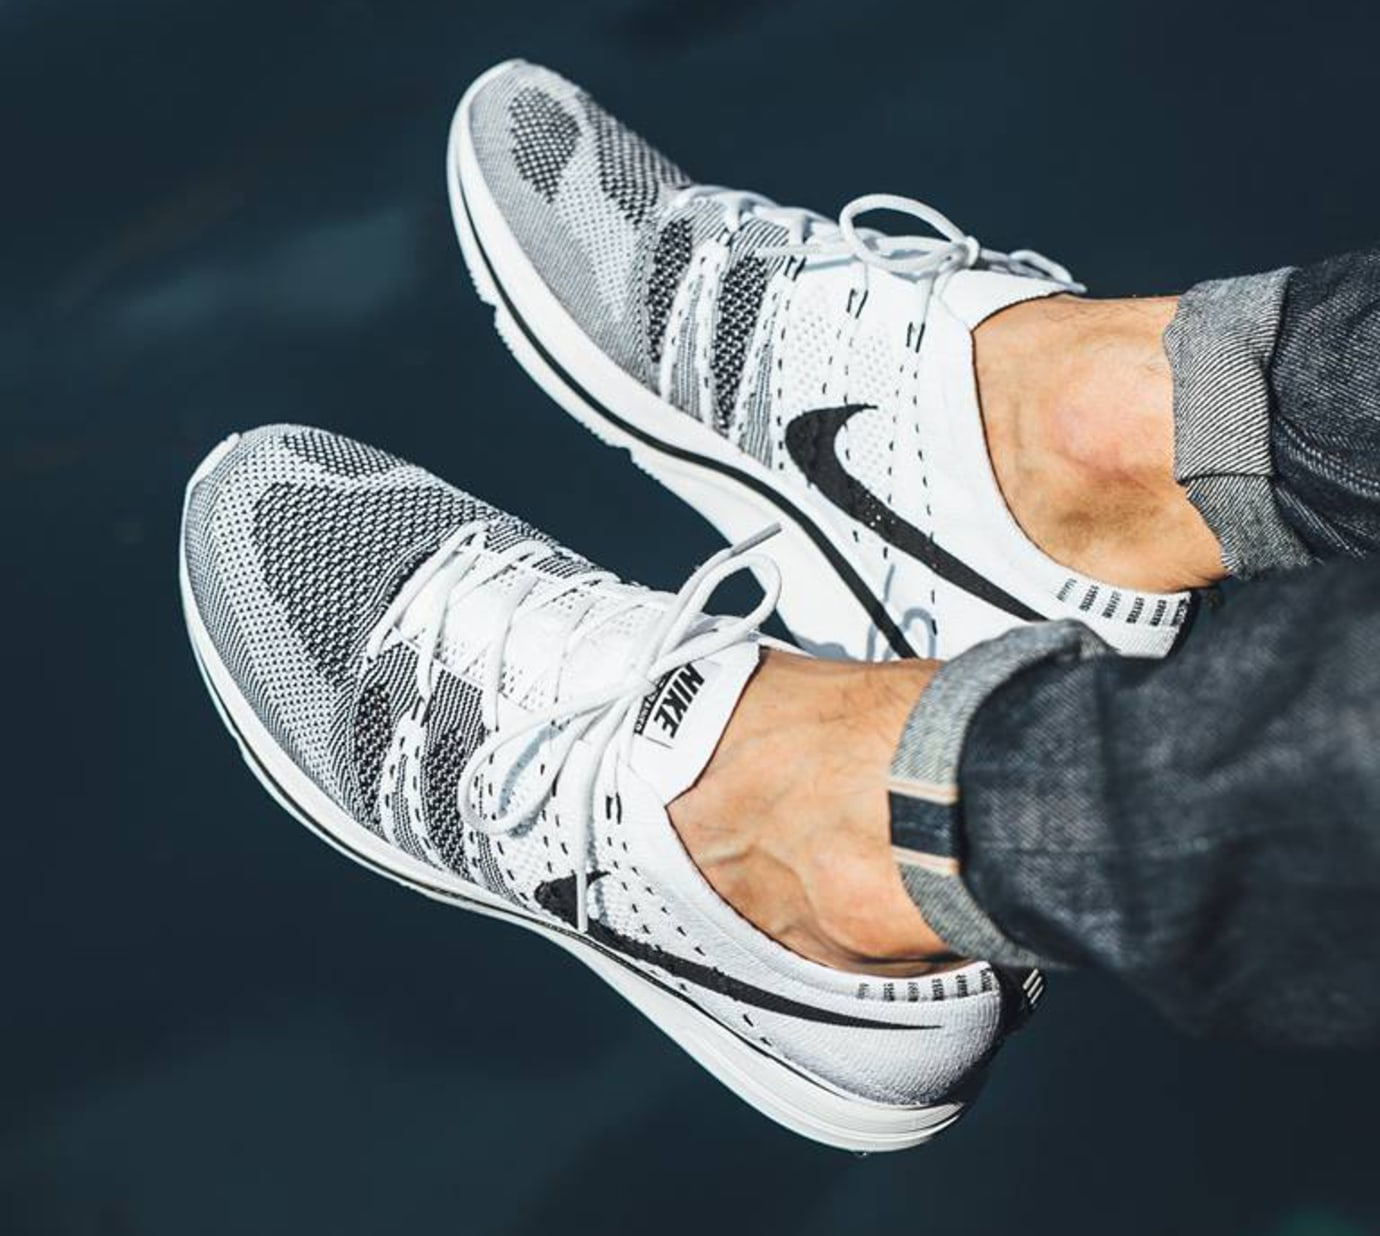 41401674d87 Image via Titolo White Black Nike Flyknit Trainer On Feet 4